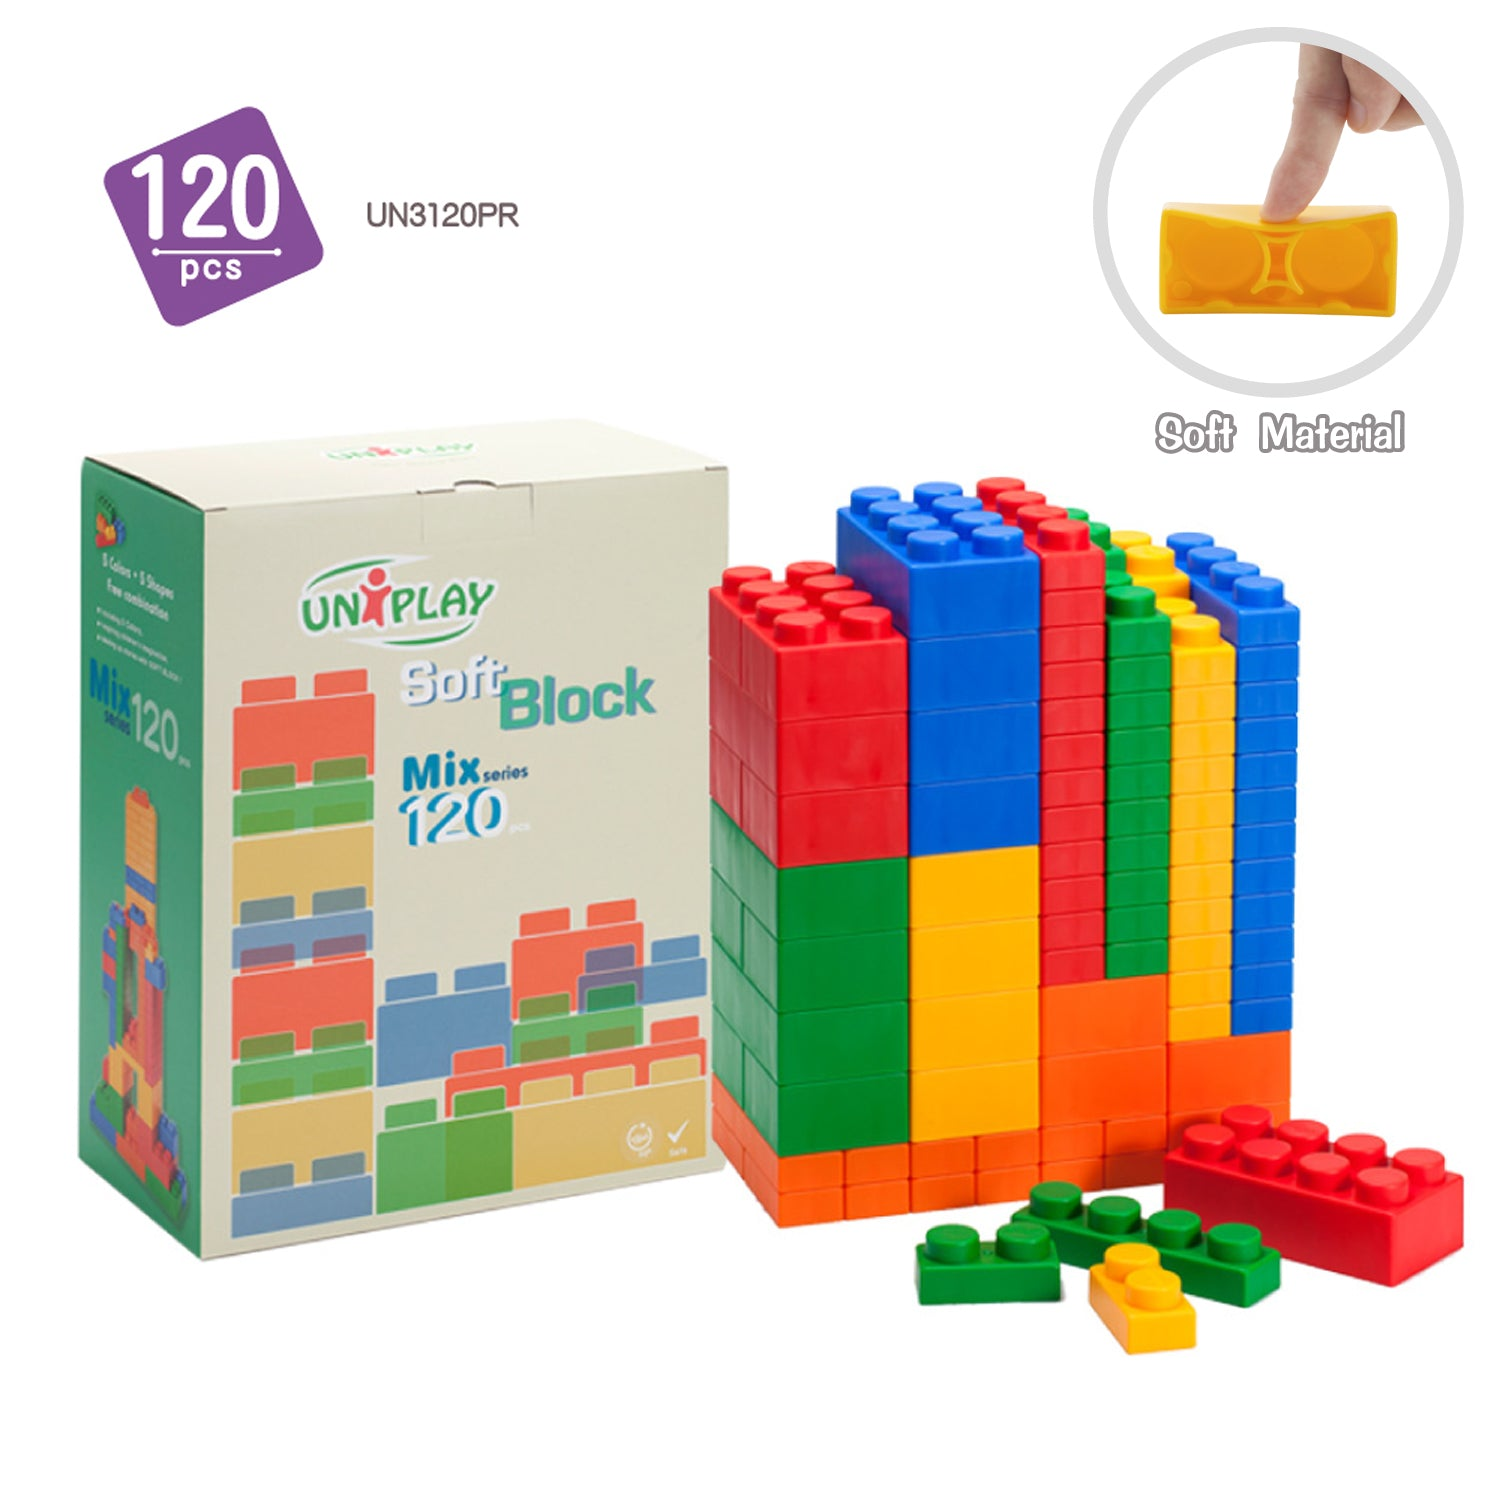 UNiPLAY Soft Building Blocks Mix Series 120pcs (#UN3120PR)